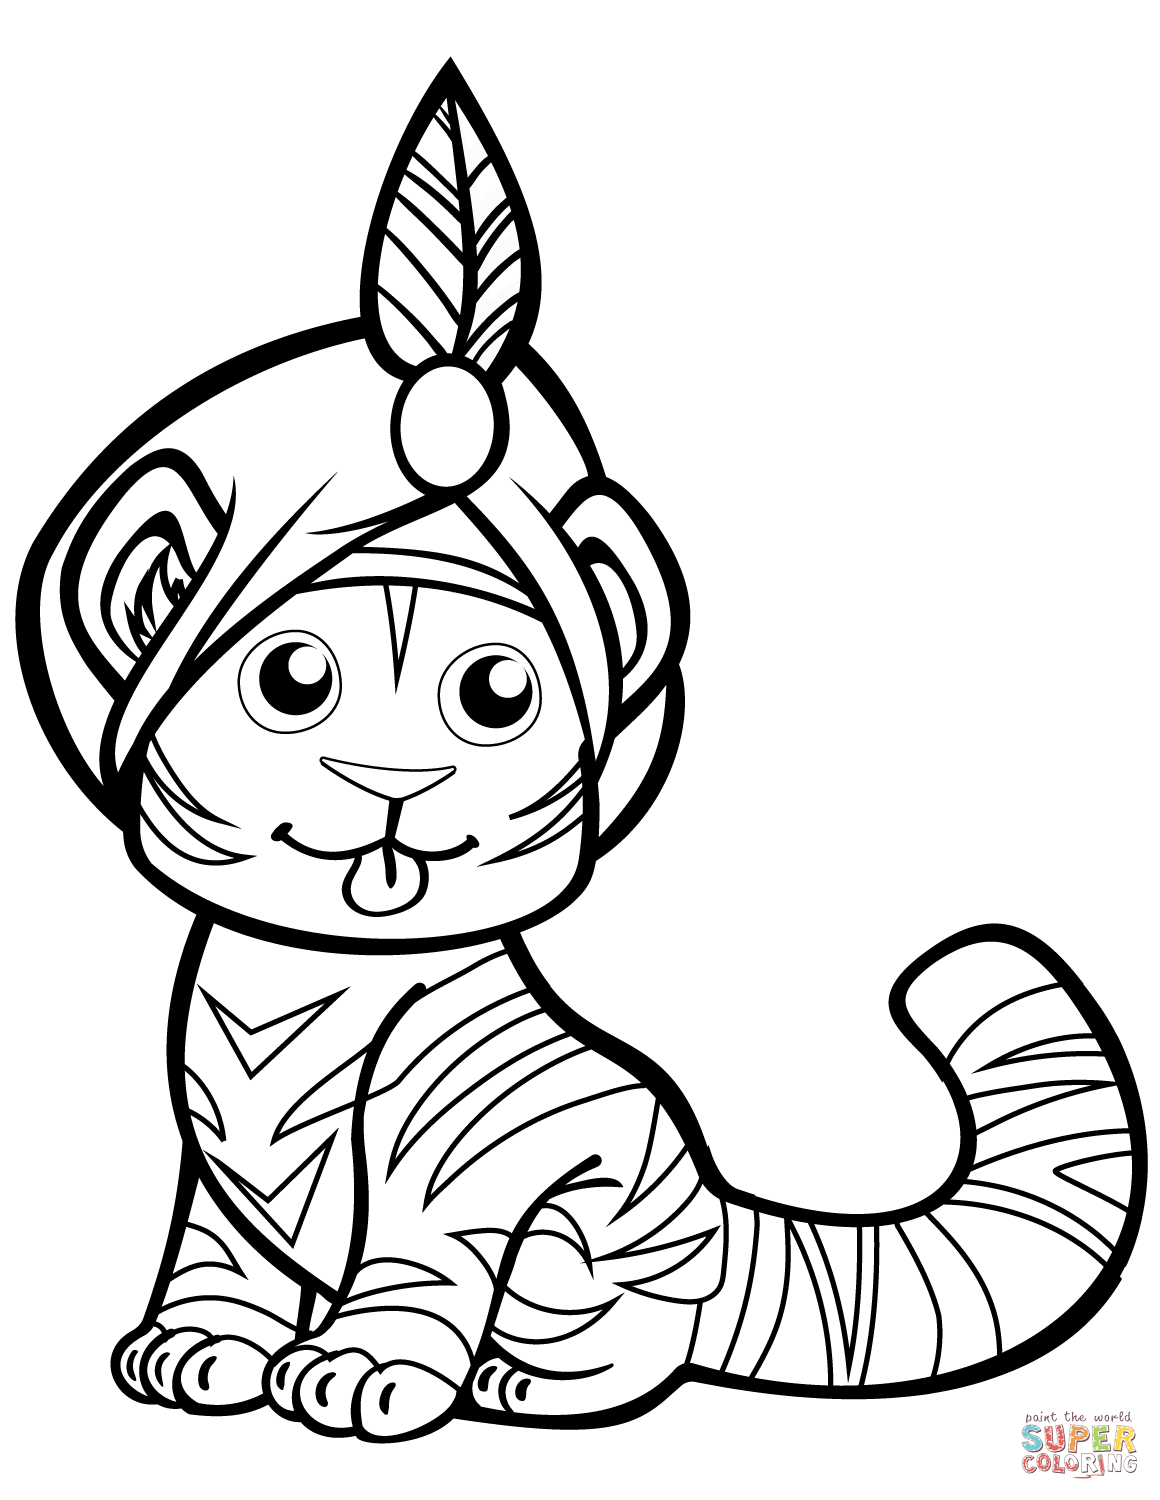 Cute Tiger In Cap Coloring Page